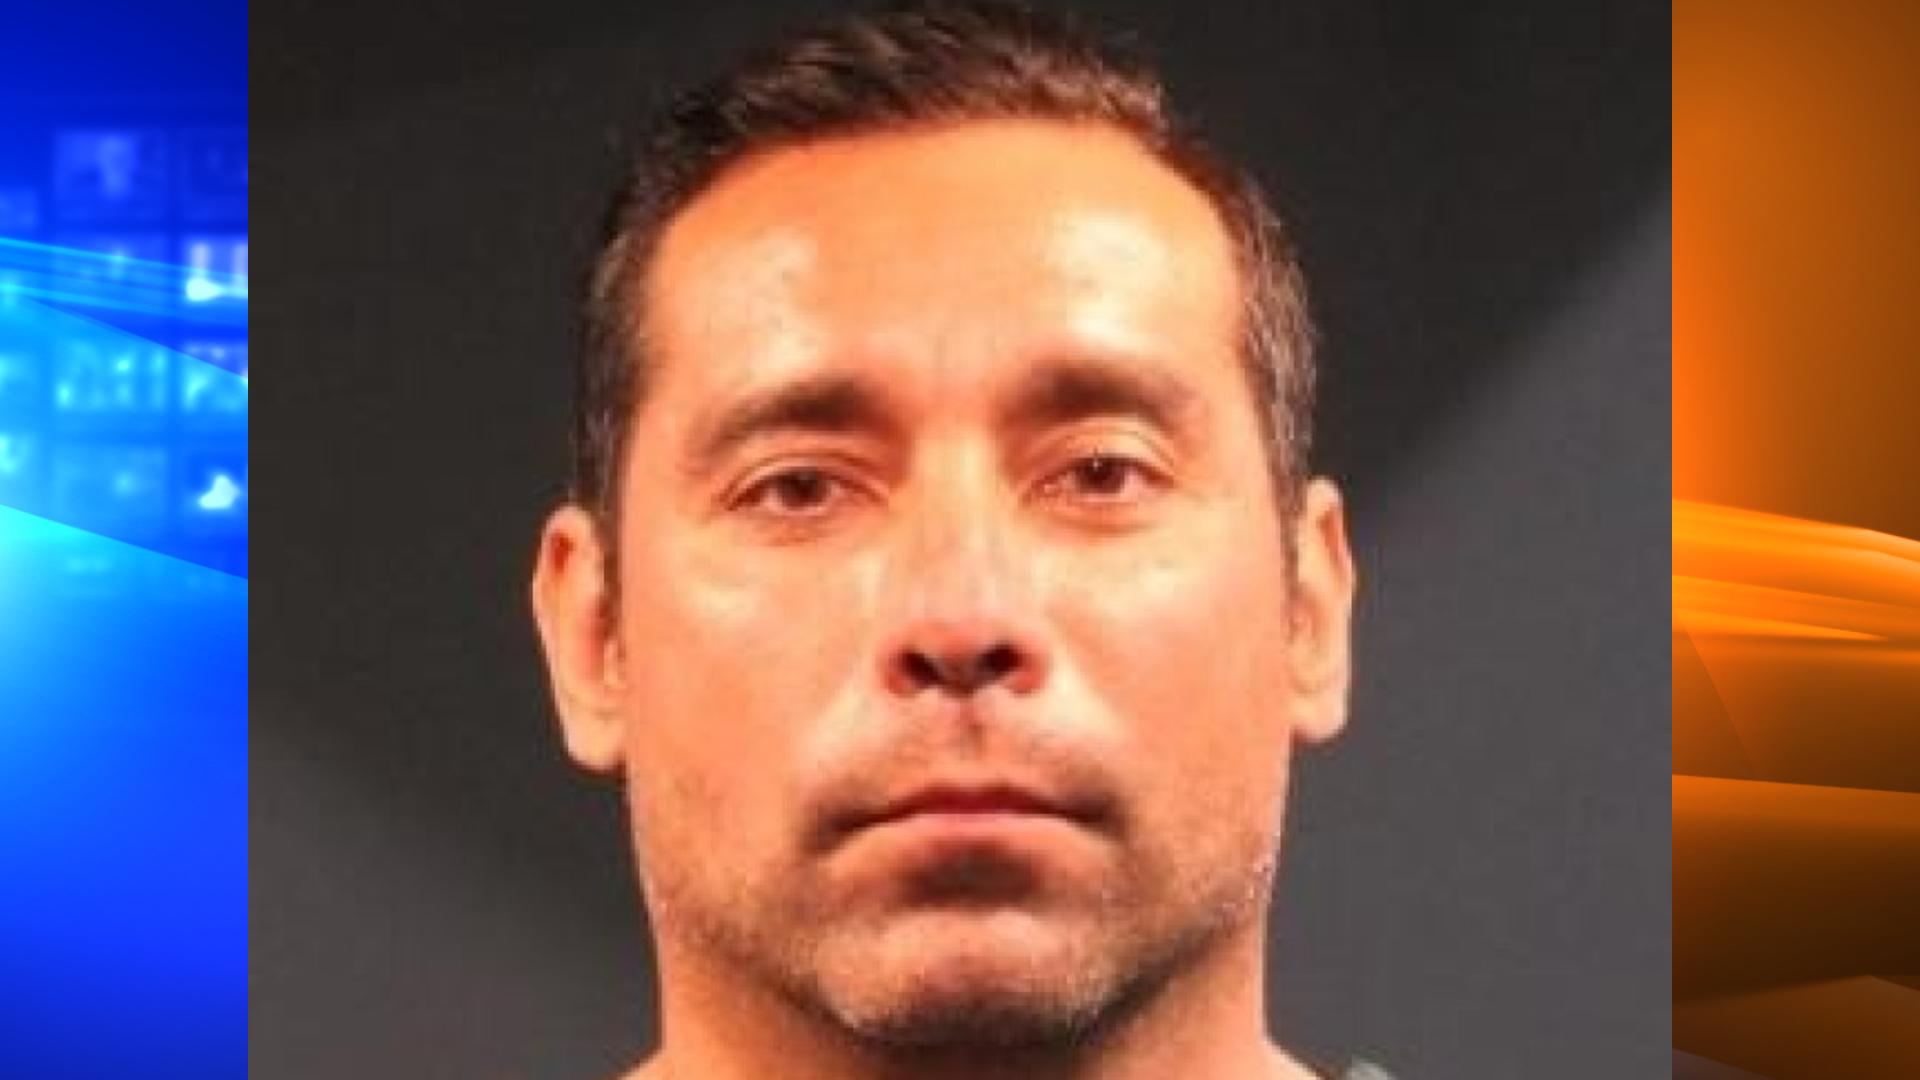 Orange County Sheriff's Deputy Steve Hortz appears in a booking photo released by the agency on Sept. 10, 2020. He was arrested that day on suspicion of burglarizing a Yorba Linda home.